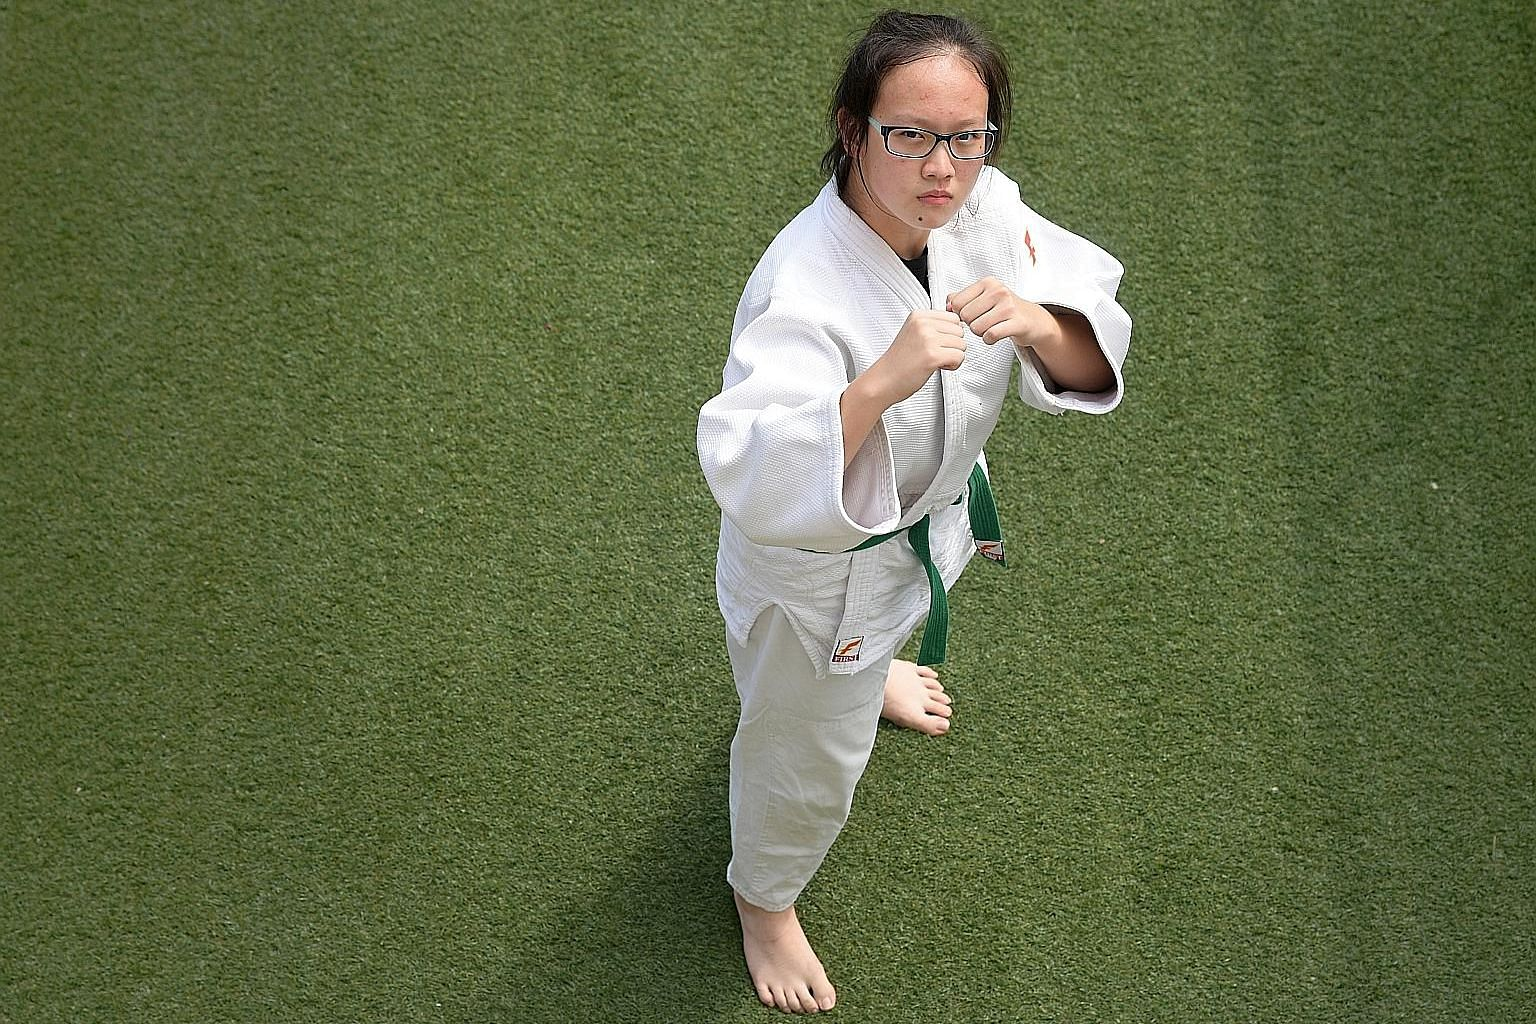 Wang Jinghan put behind her a series of injuries to step back onto the judo mat, all in time to help her school seal the Schools National B Division judo divisional title.